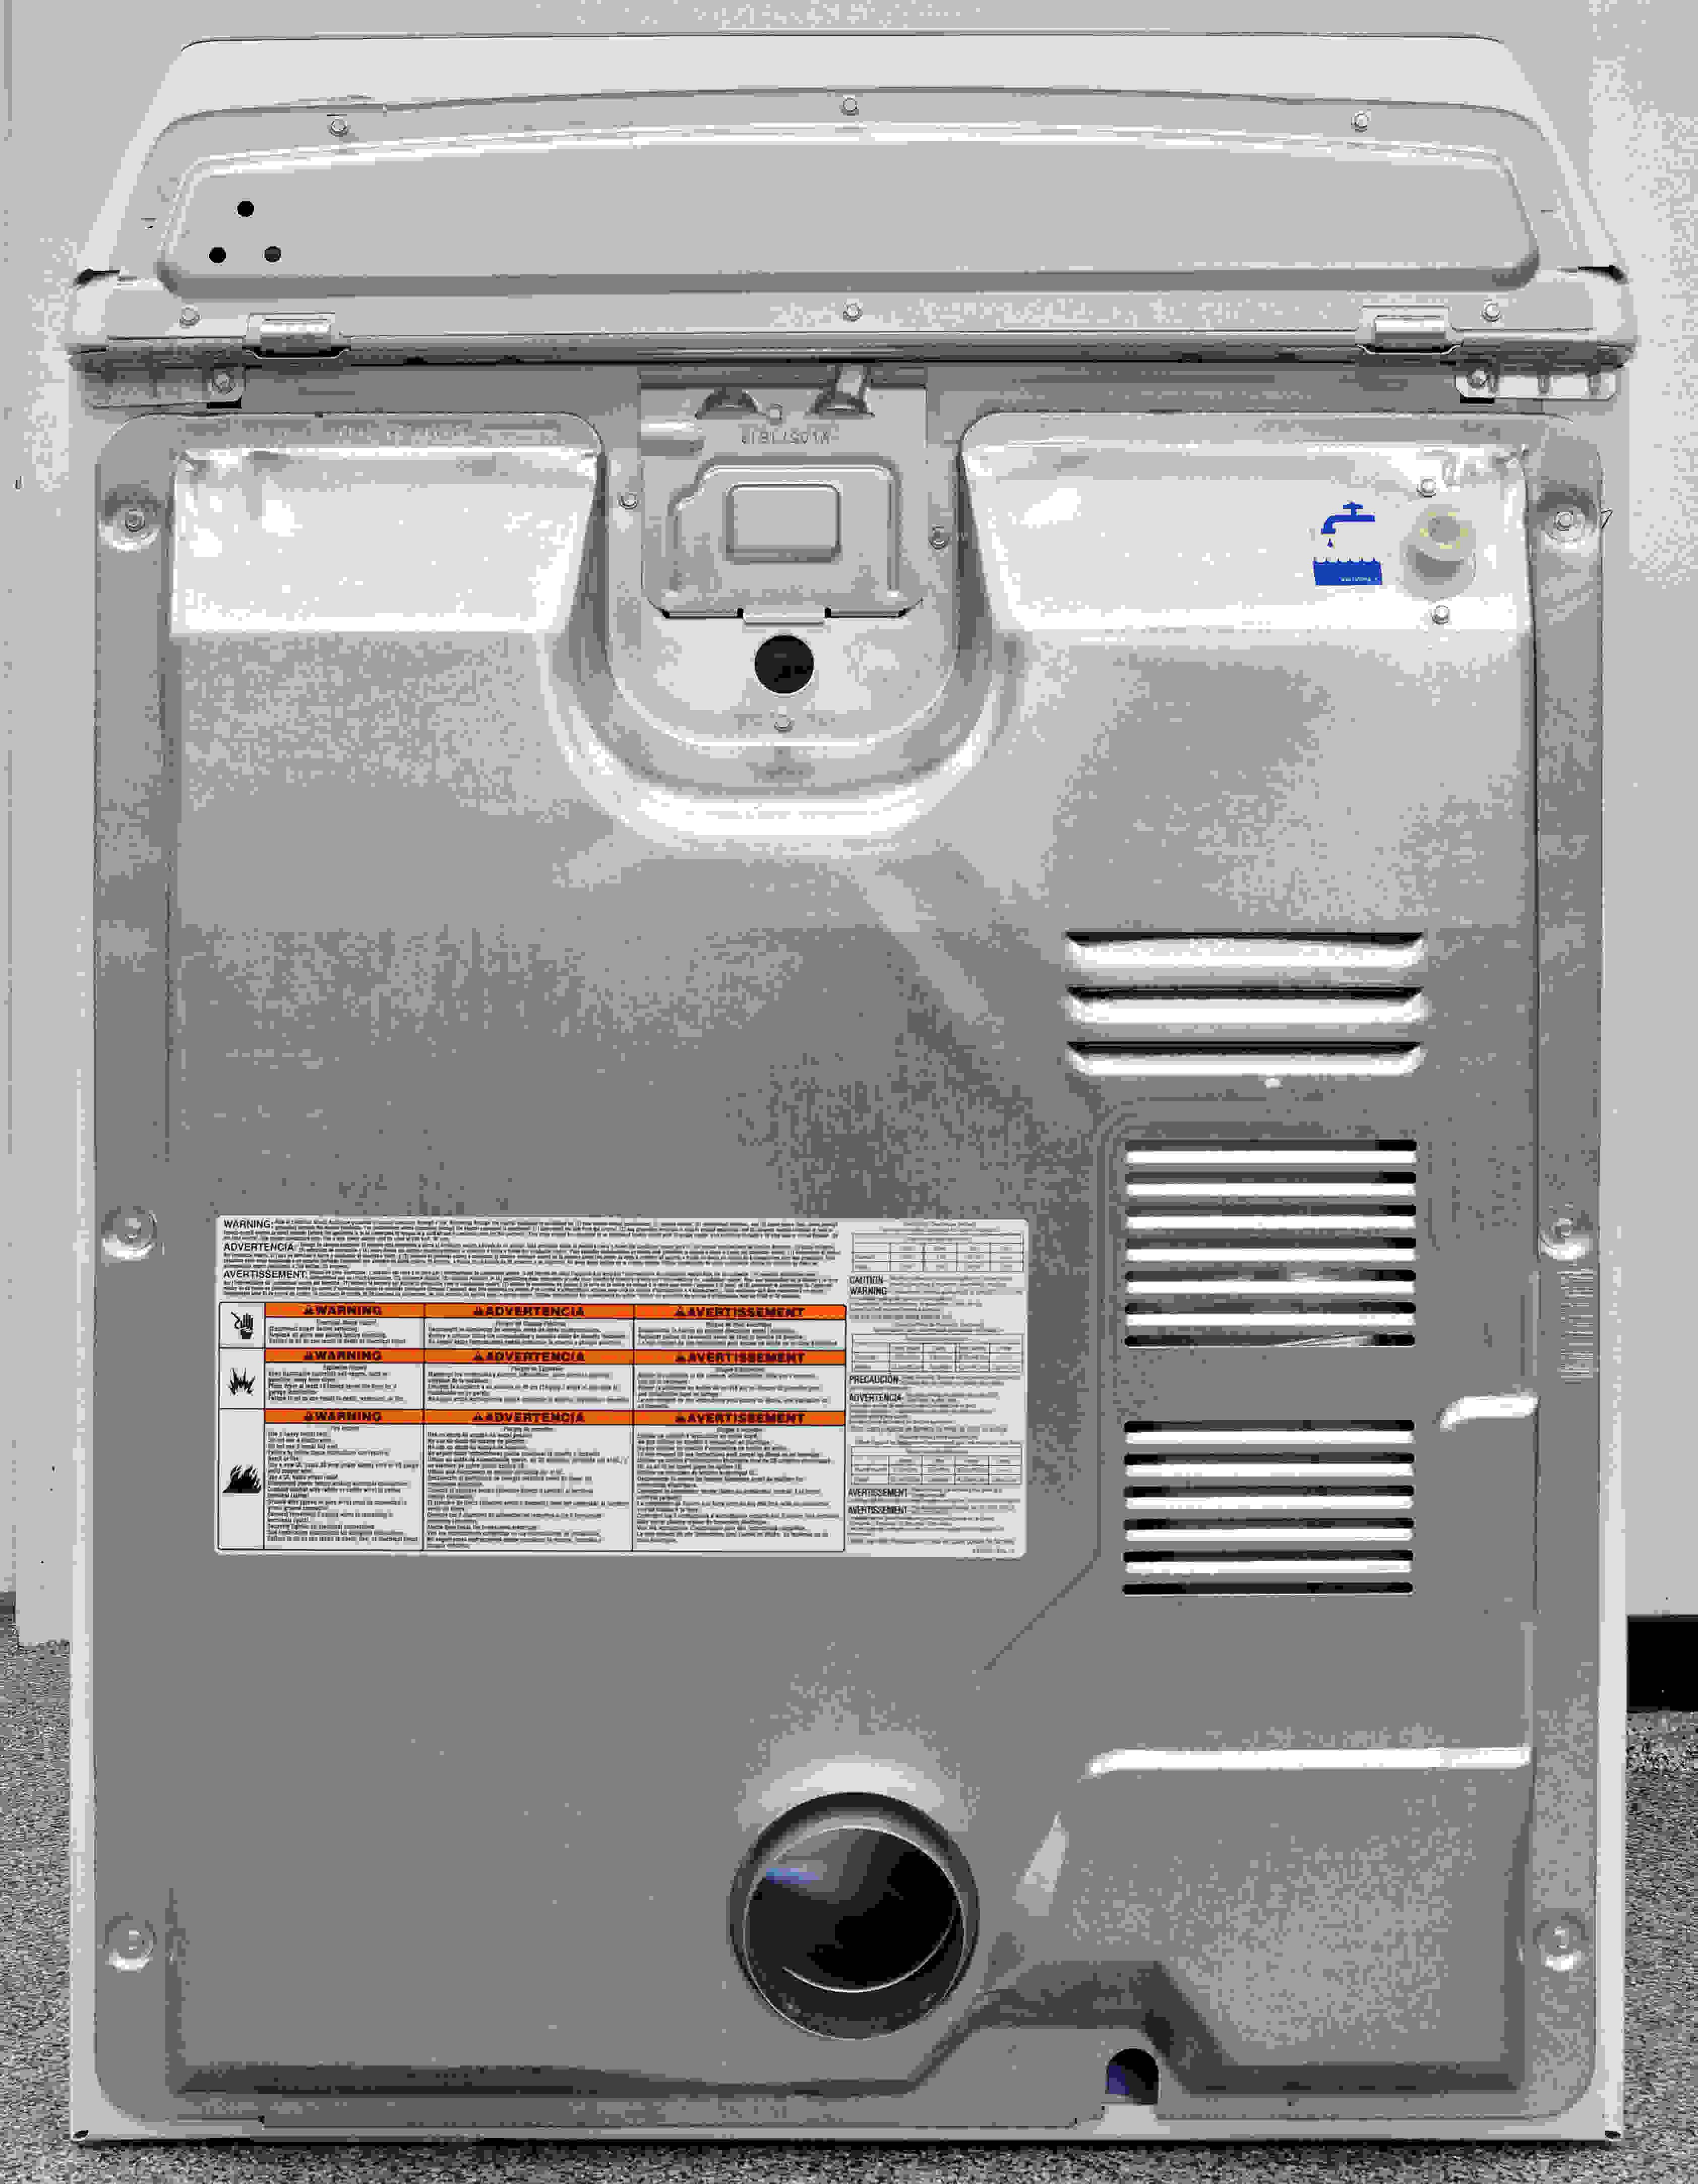 Despite its affordable price, the Maytag Bravos MEDB755DW includes a water hookup for steam.